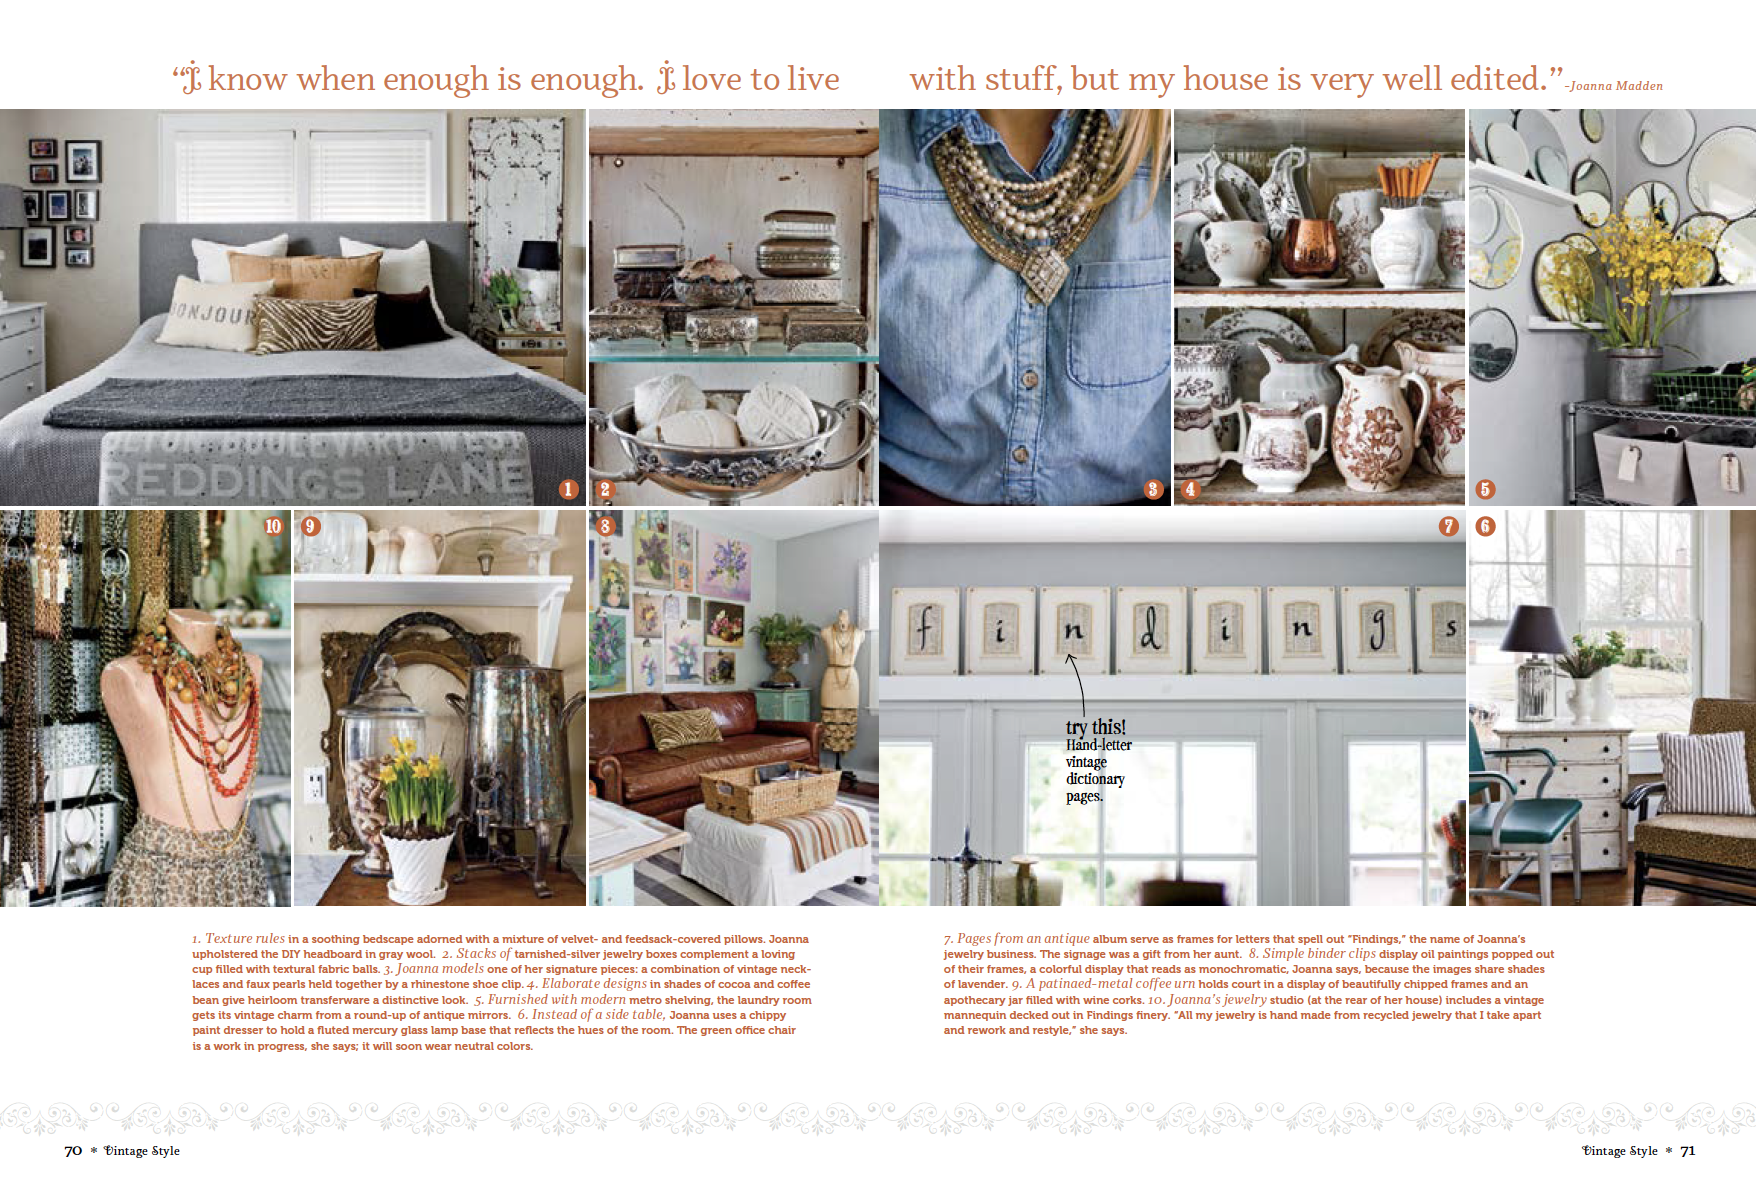 vintage-style-eclectic-artist-interior-photography.png